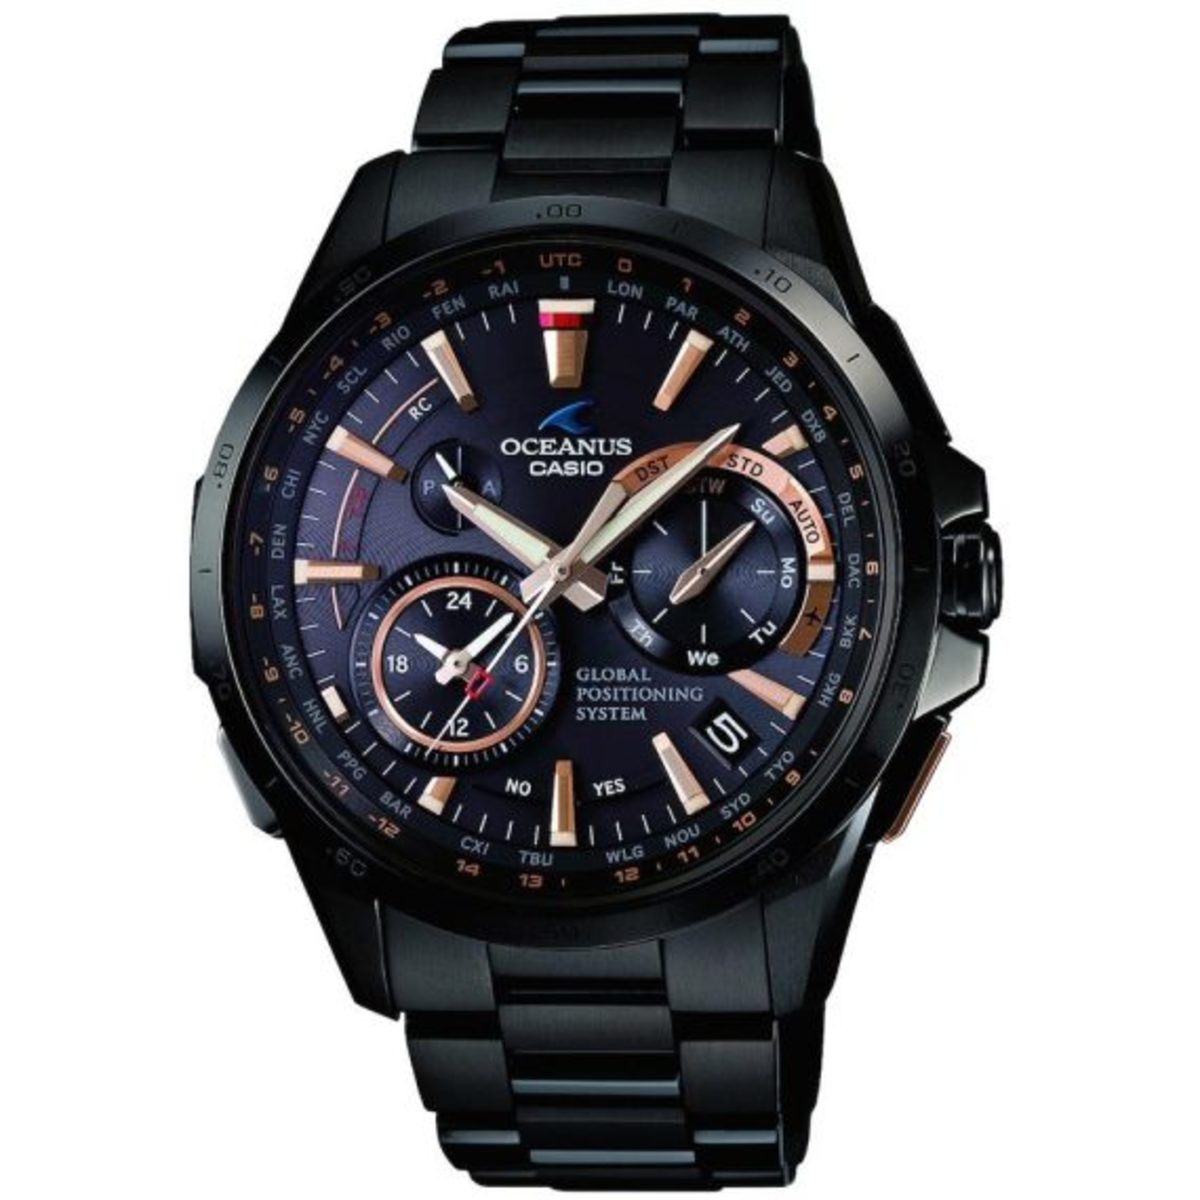 casio-oceanus-ocw-g1000-watch-03